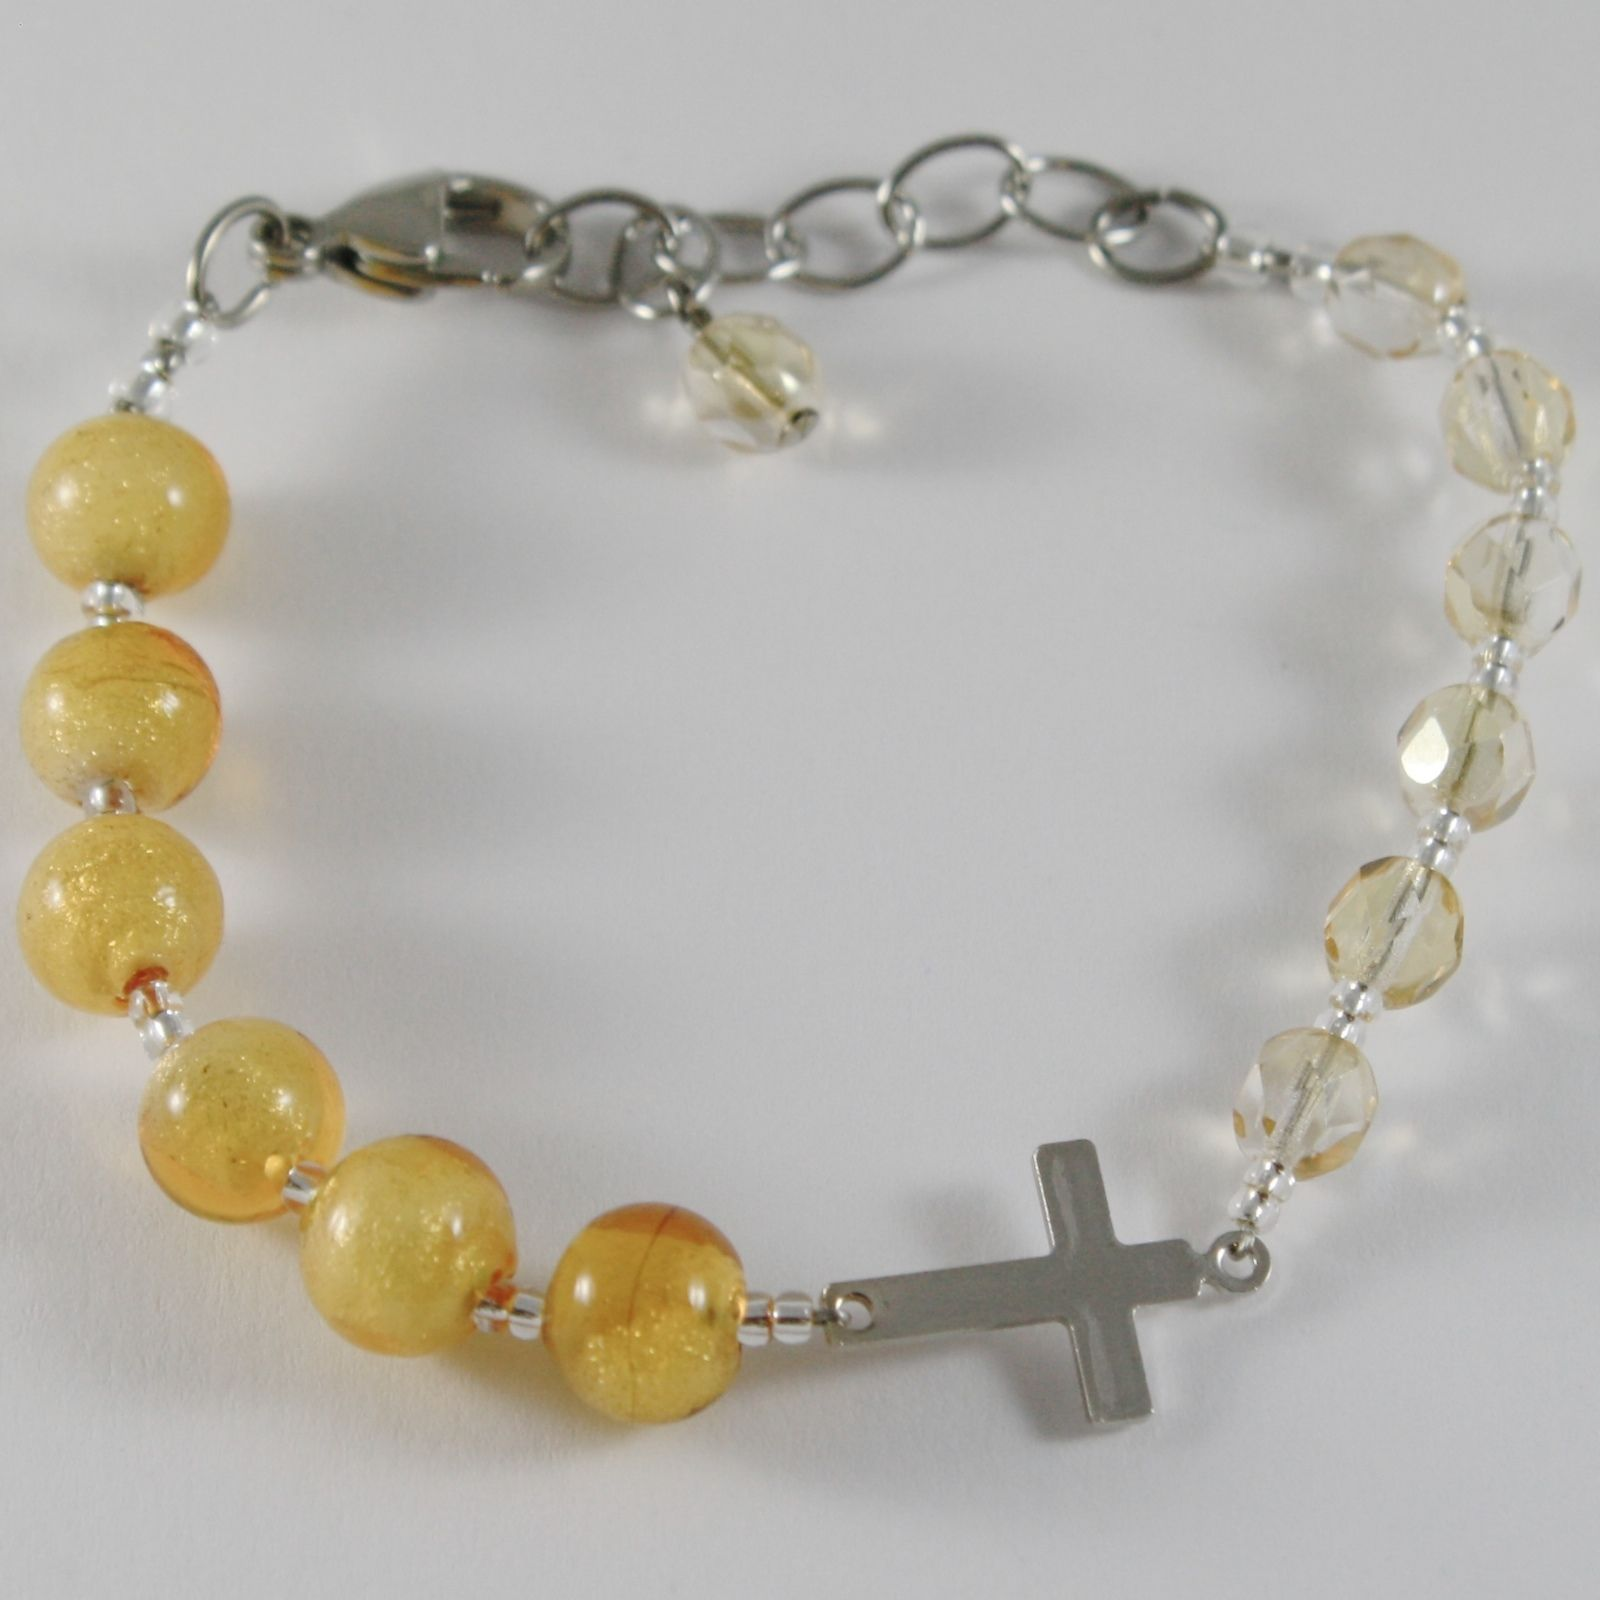 ANTICA MURRINA VENEZIA ROSARY BRACELET YELLOW BALLS SPHERE WITH JESUS CROSS